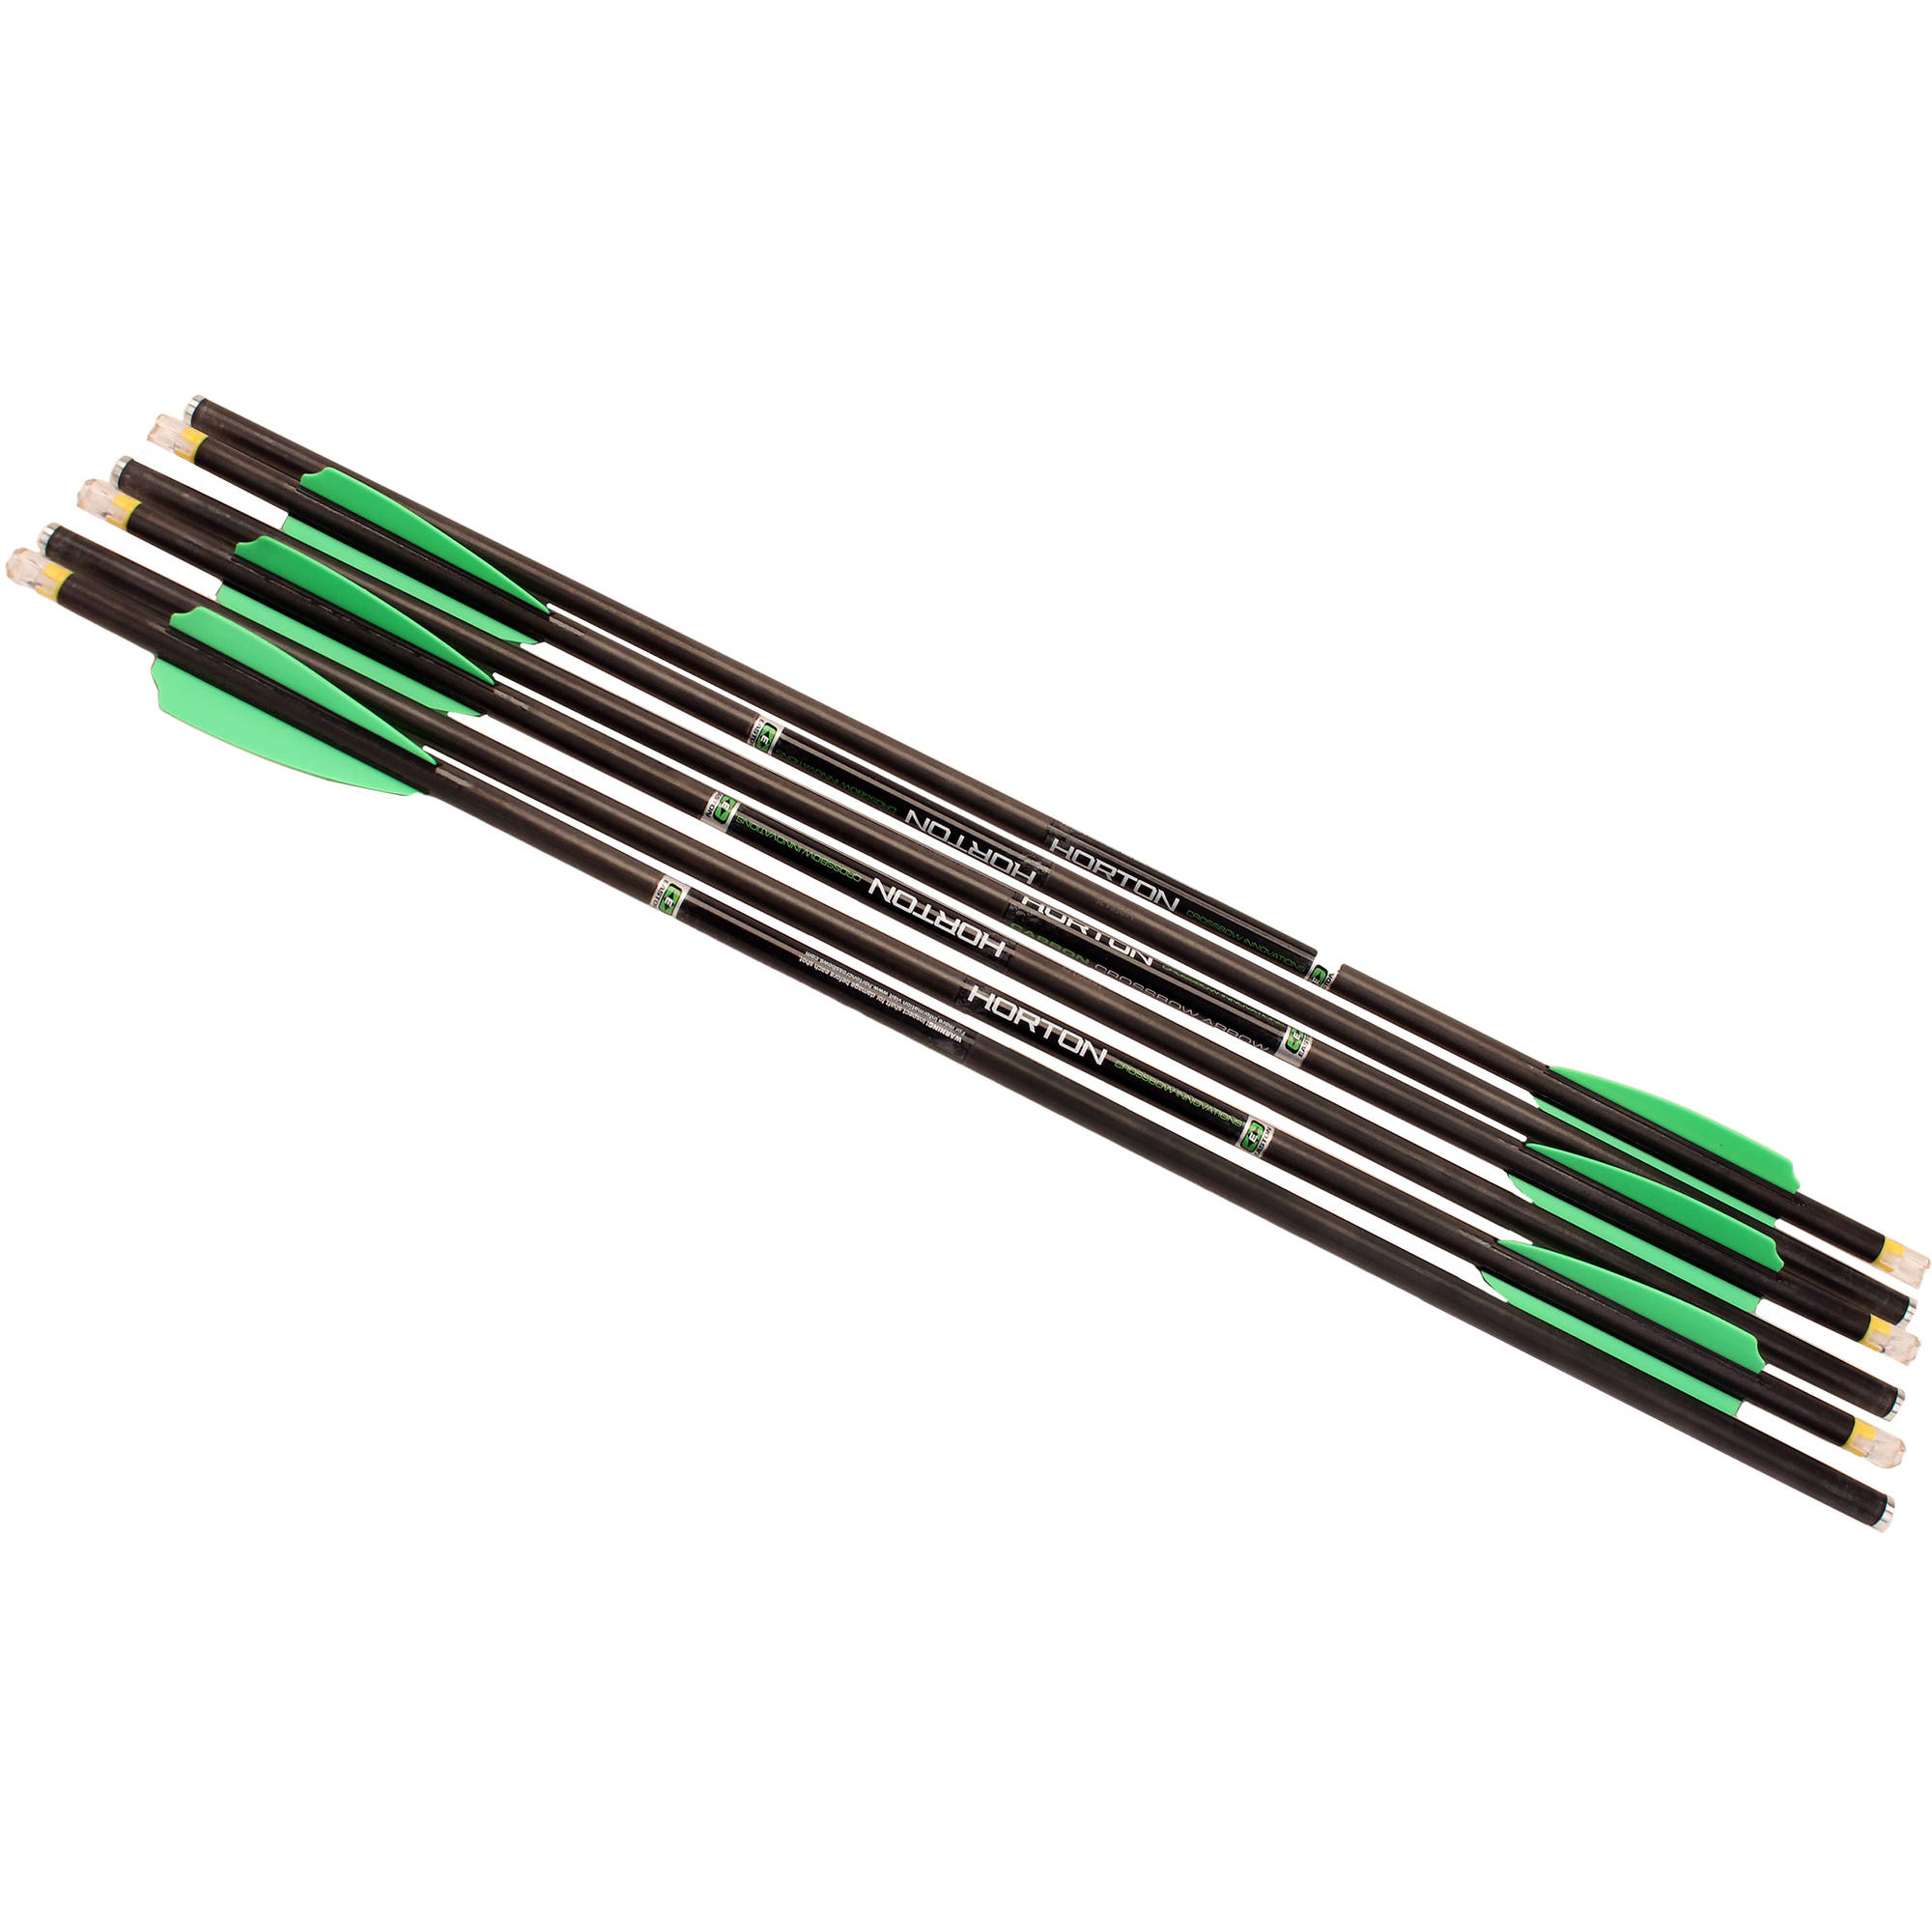 "Horton Omni Brite 2 Lighted Carbon 20"" Arrows 6pk HEA-728.6"